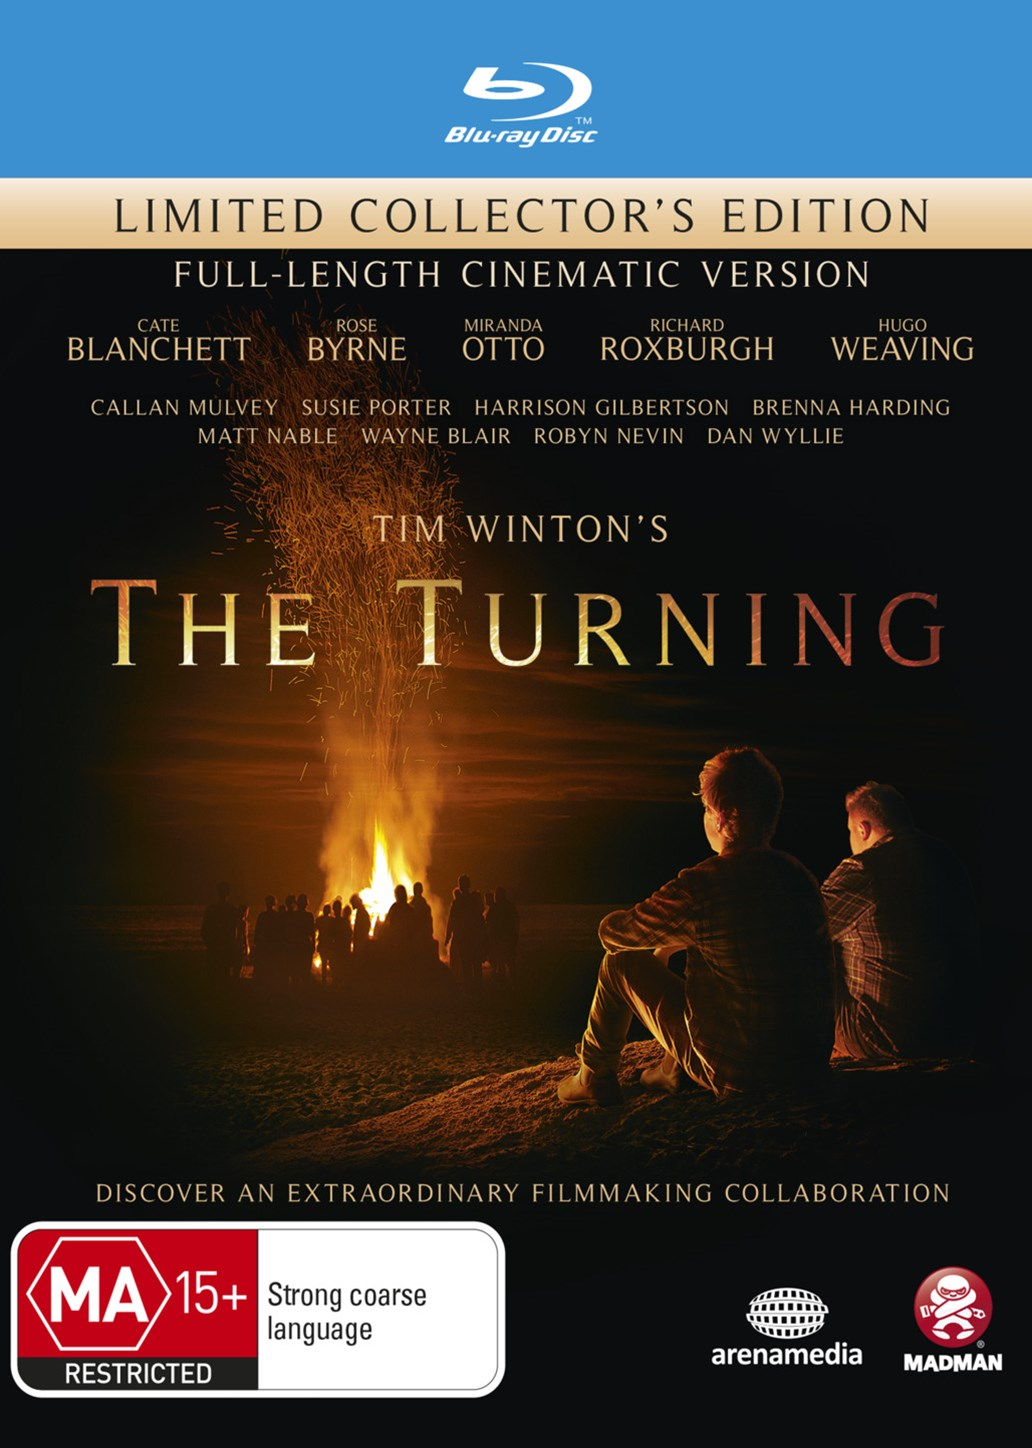 The Turning - Tim Winton (Limited Edition Blu Ray)